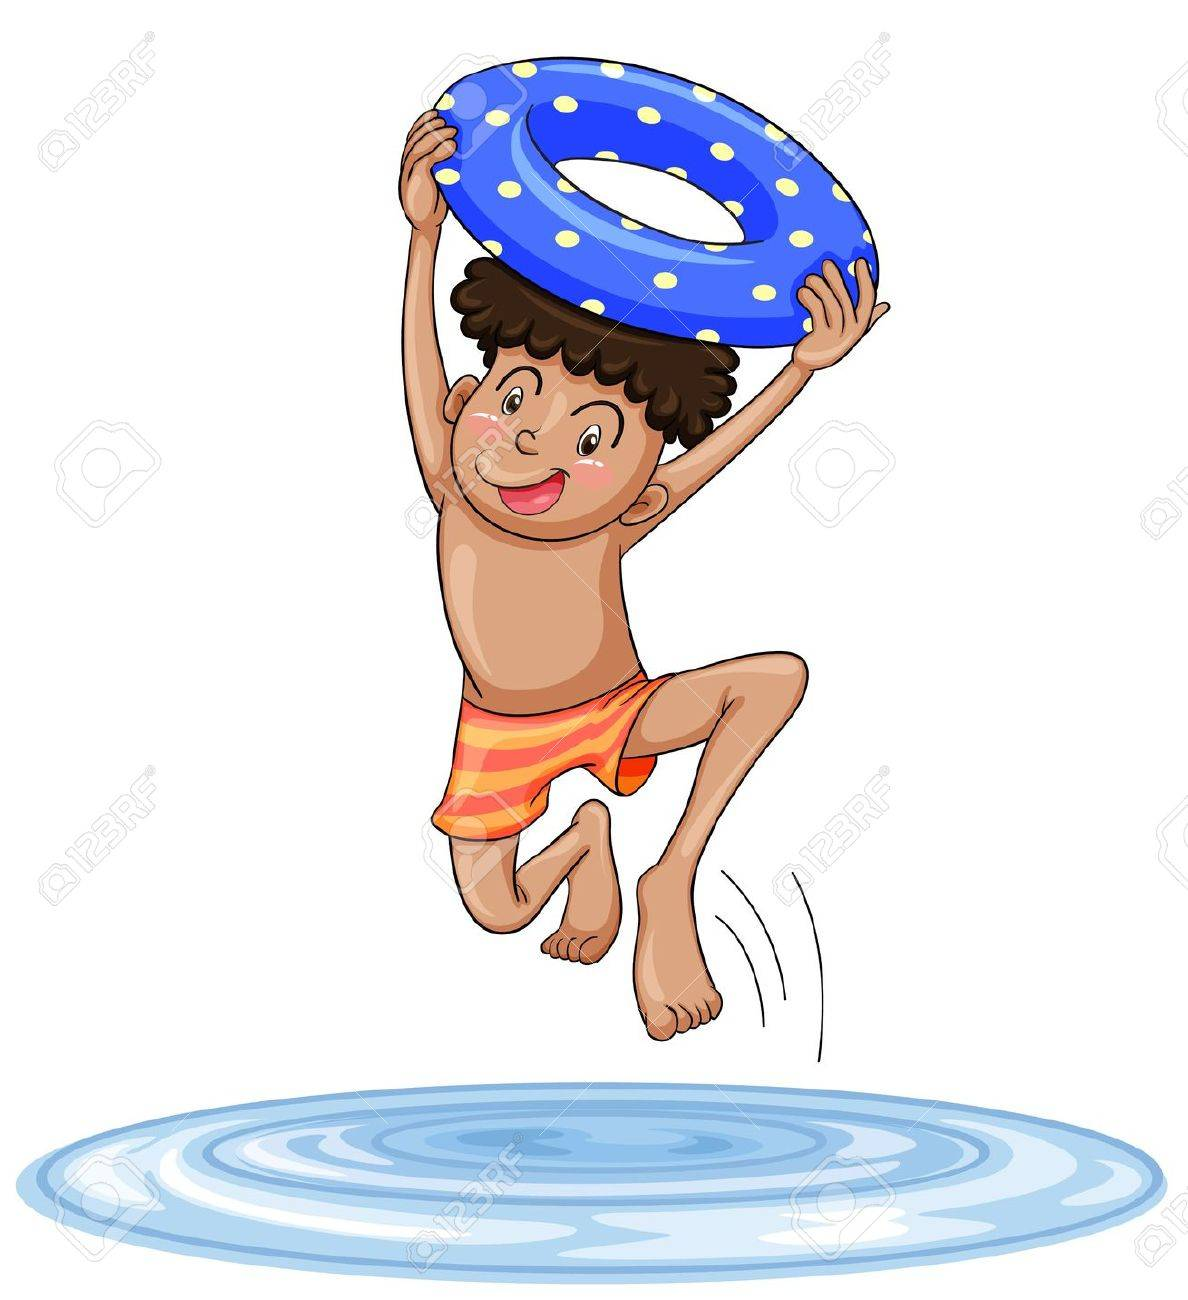 illustration of a boy diving into water on a white background Stock Vector - 14871416